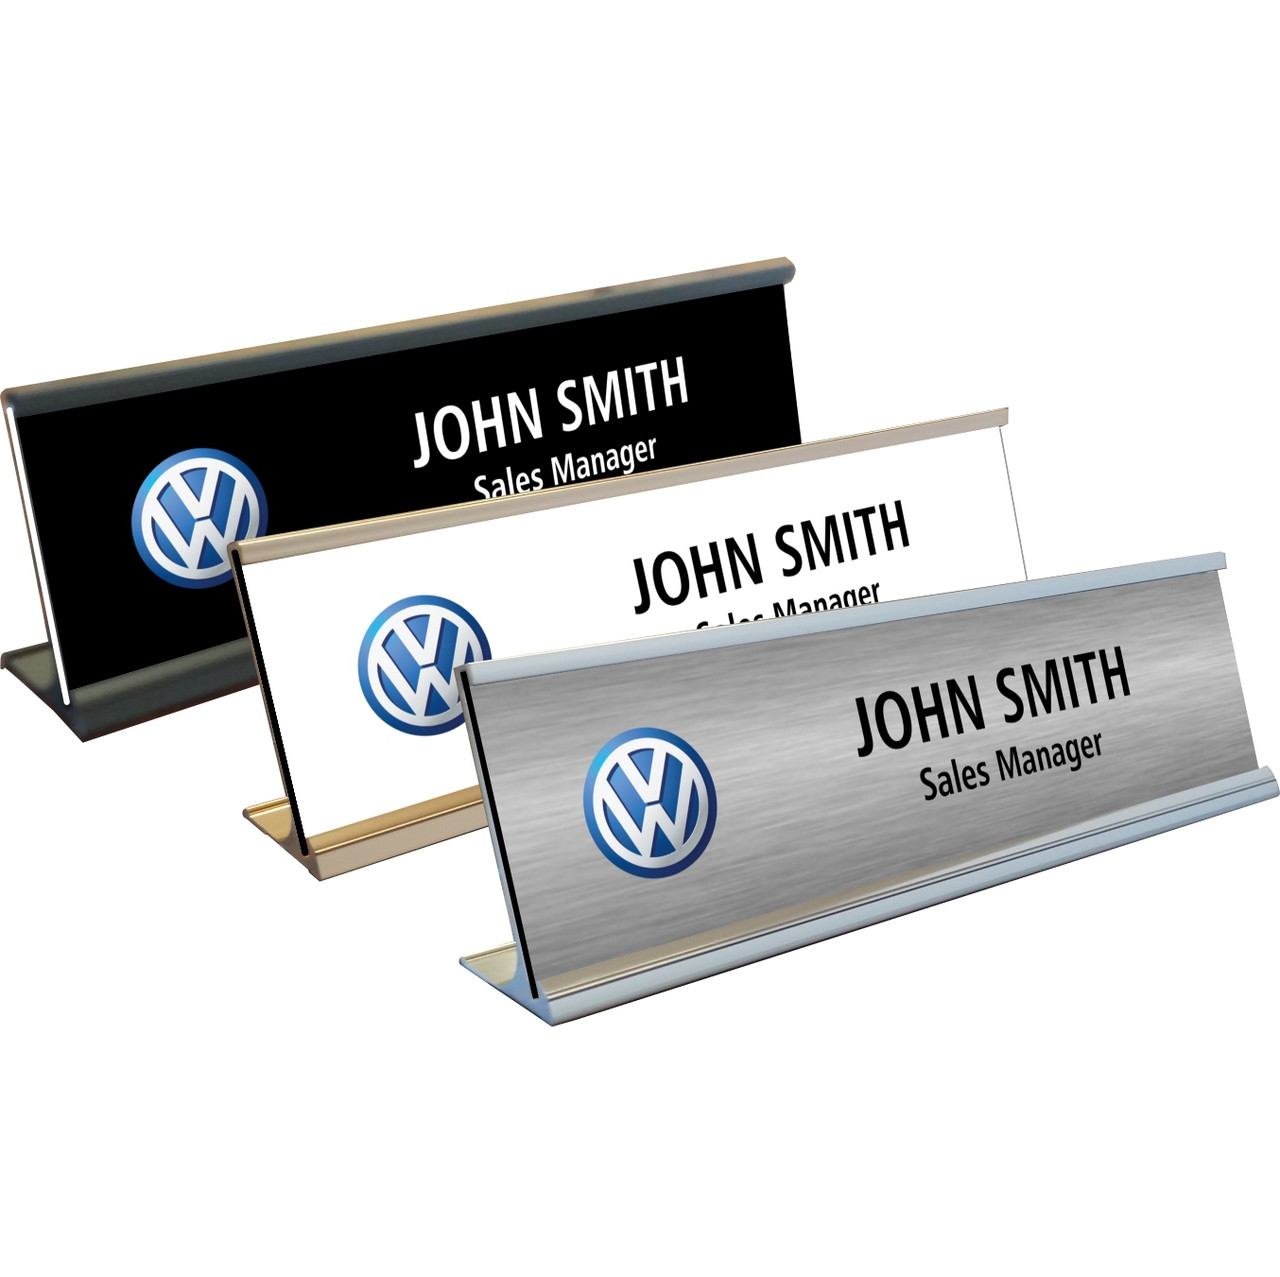 desk awards and nametags all plate products nameplate edmond signs plates name brass trophy for